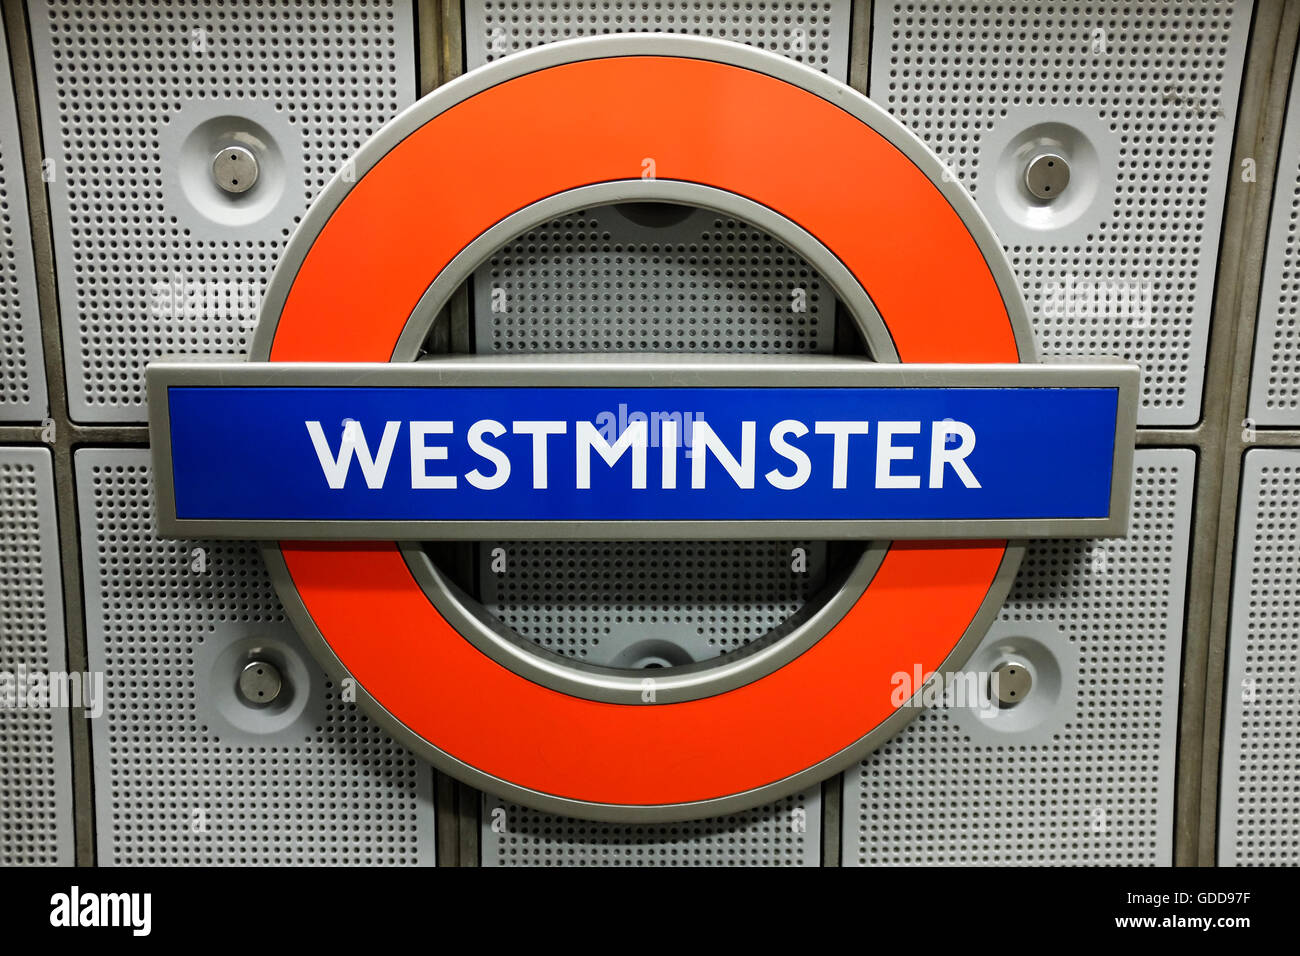 A tube sign at Westminster underground station in London, England. Stock Photo